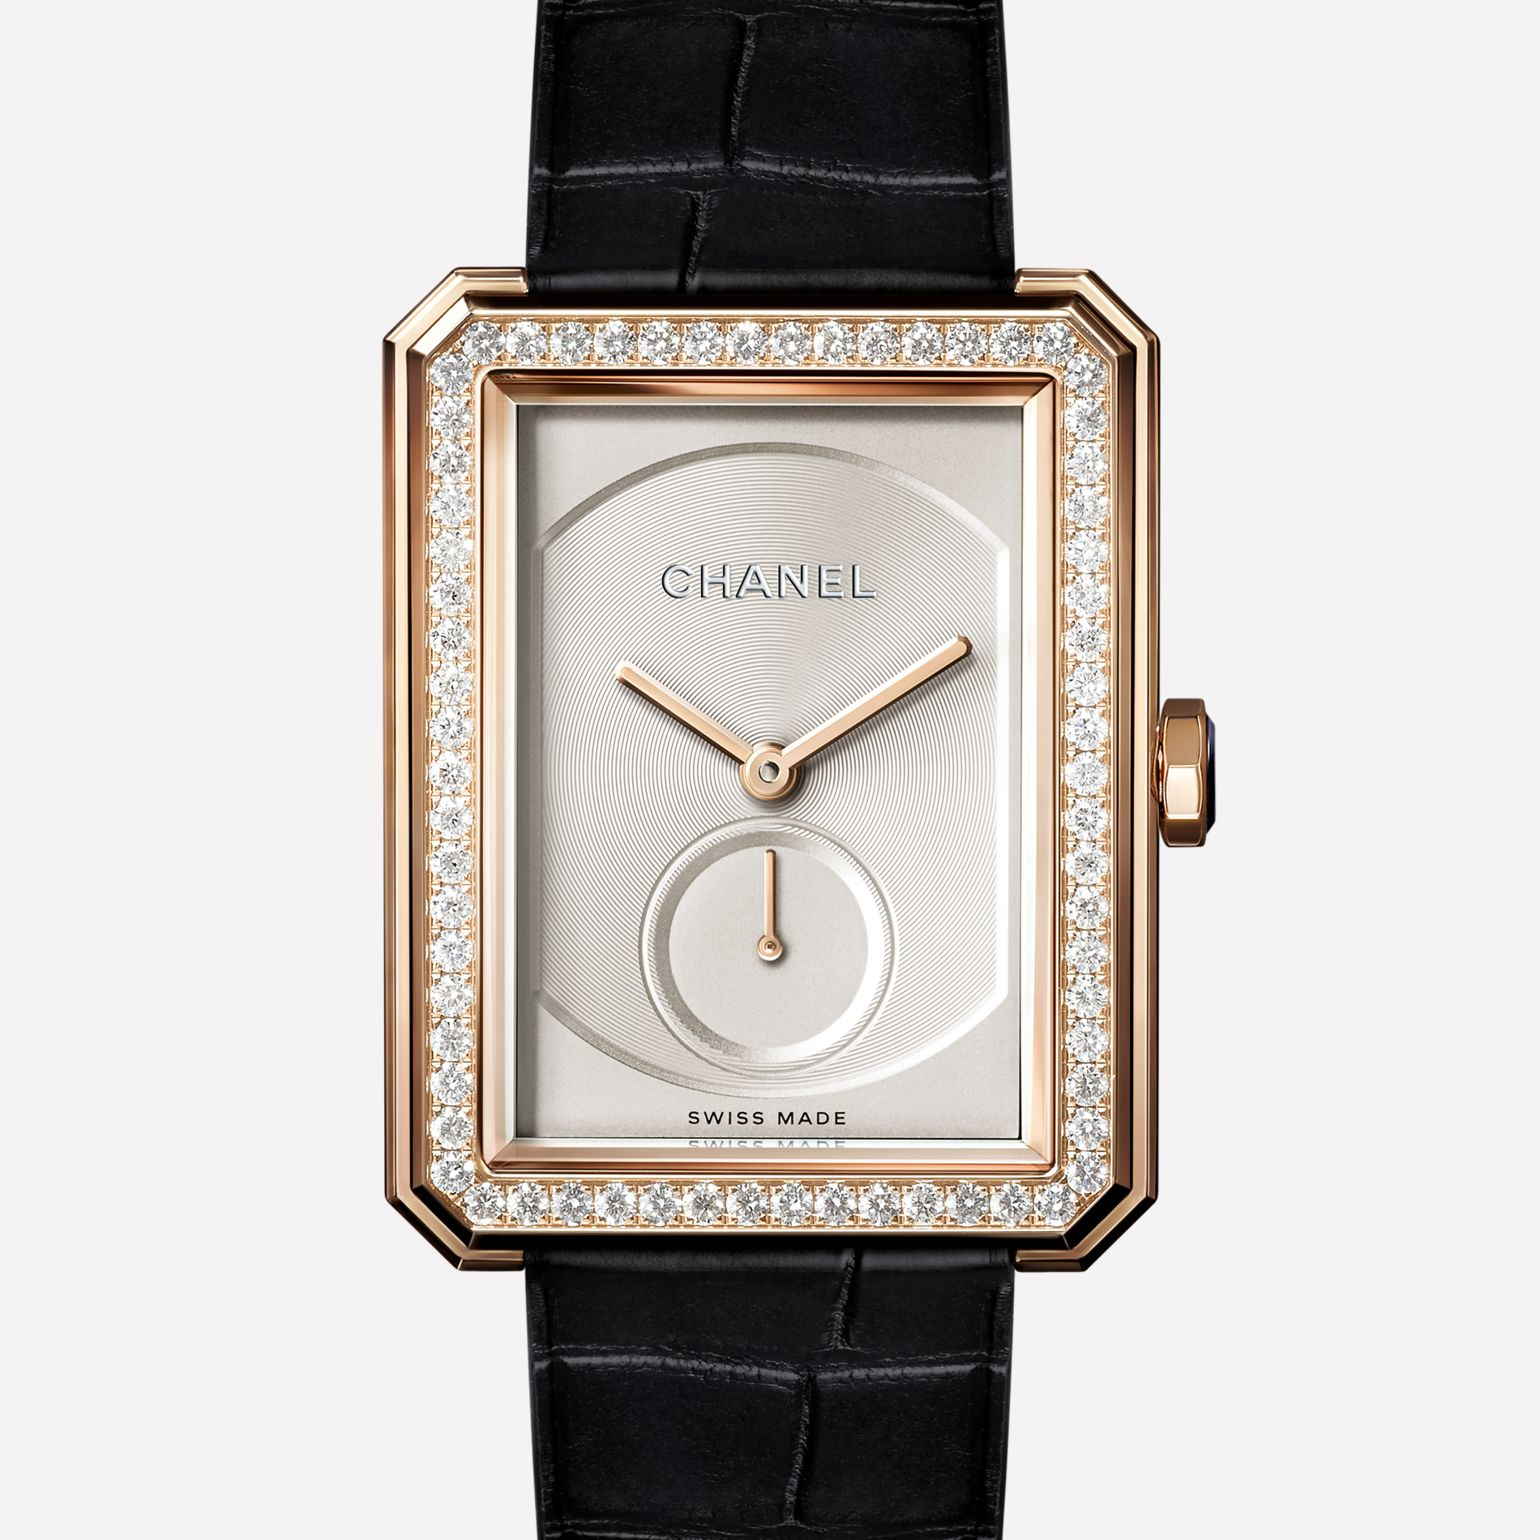 PREMIÈRE∙BOY DE CHANEL Large version, BEIGE GOLD set with diamonds and alligator strap